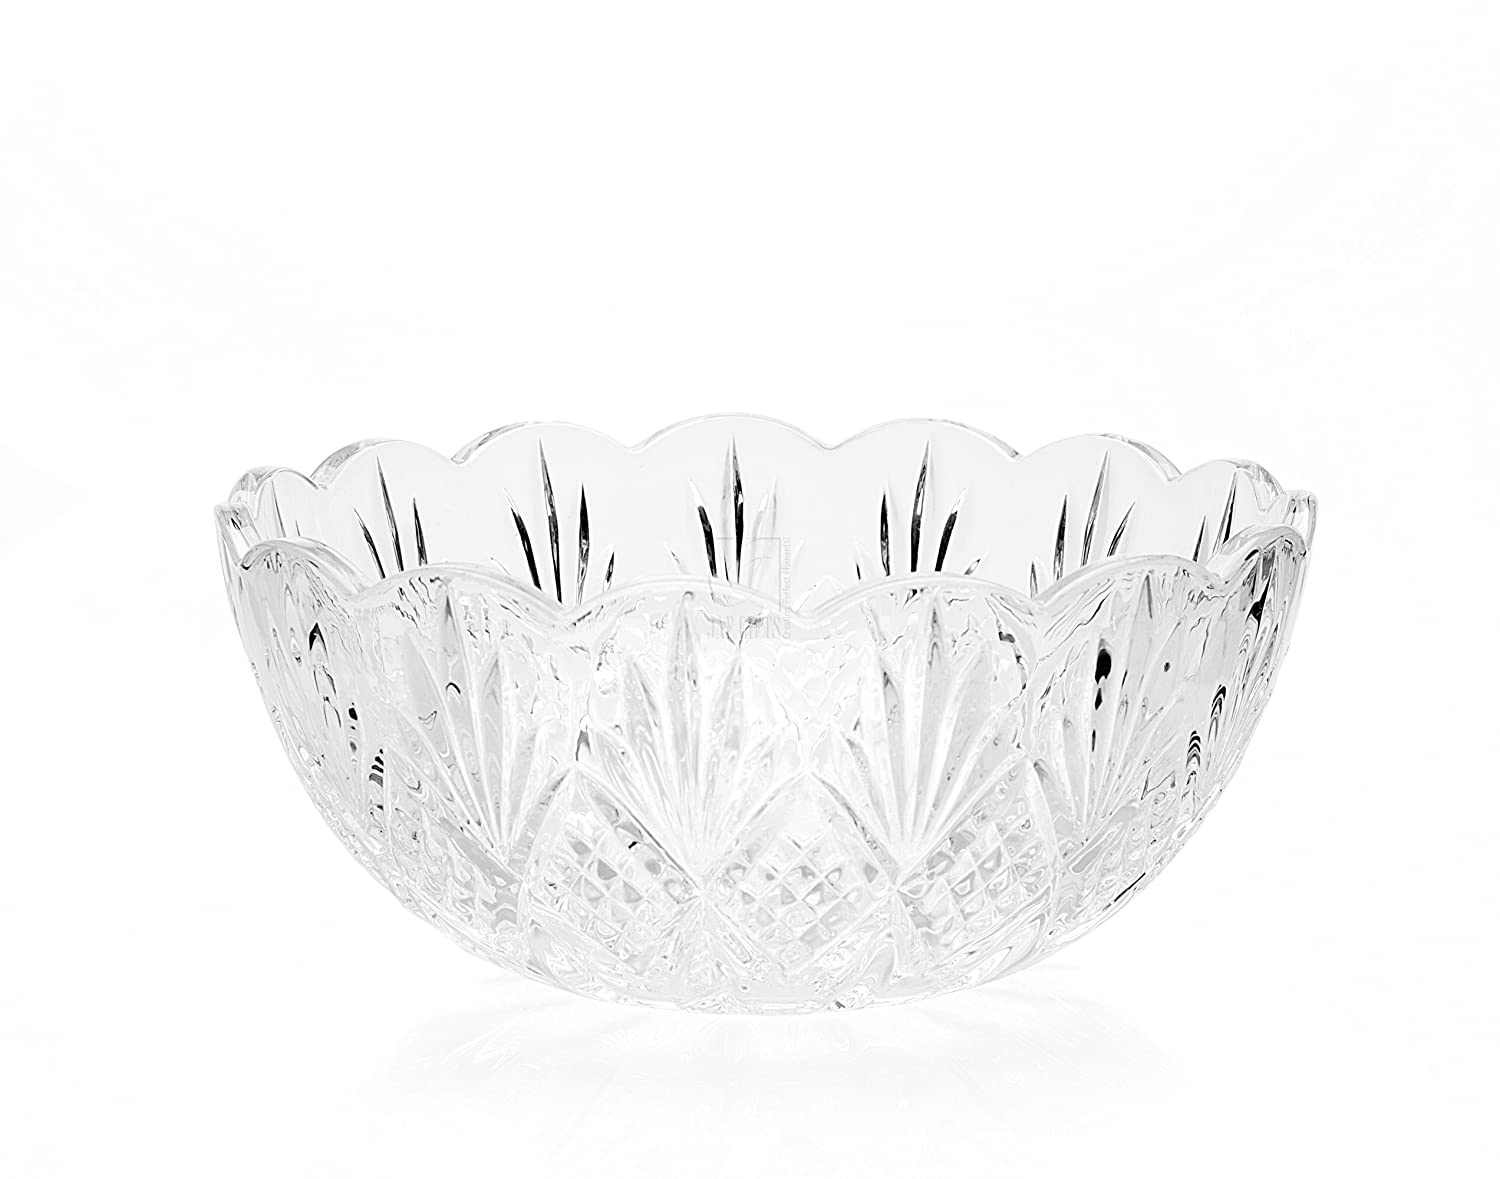 DUBLIN COLLECTION CRYSTAL SERVING BOWL Godinger Silver Art 25750